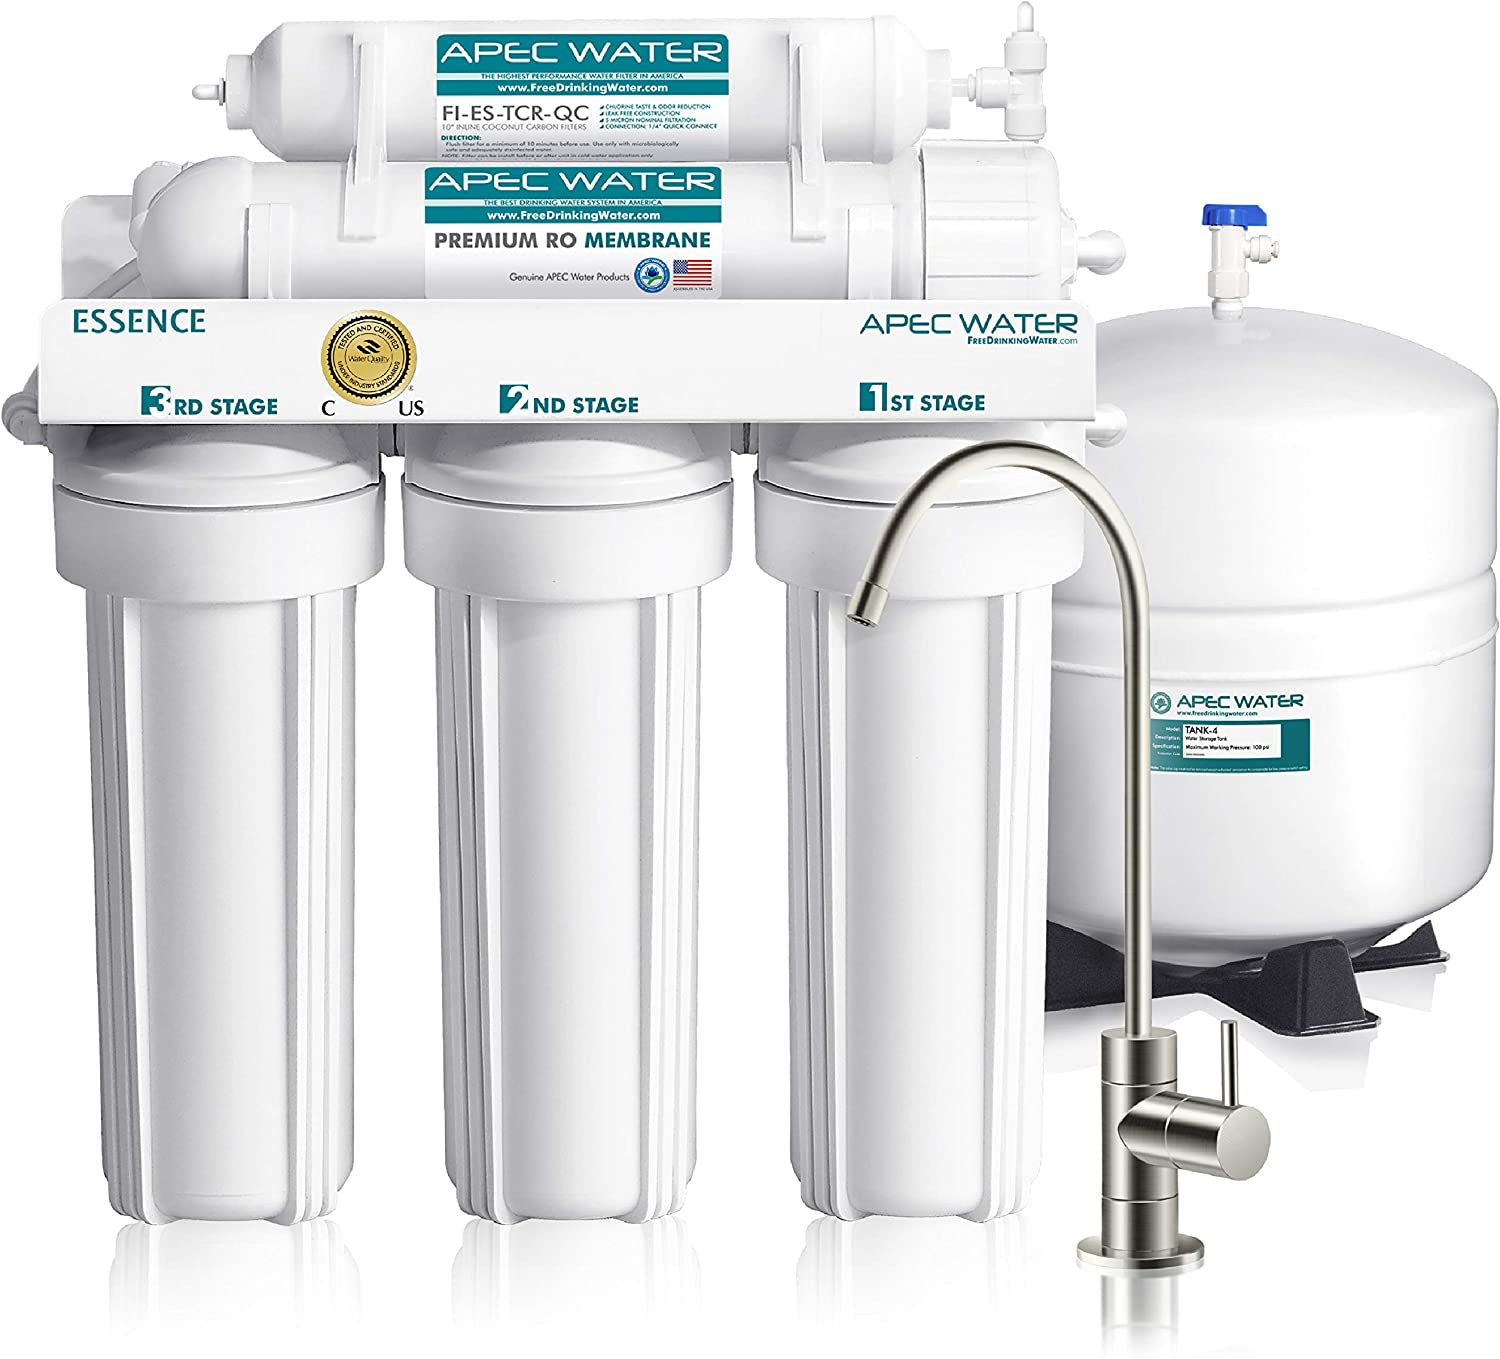 9 Best Reverse Osmosis Under Sink Water Filters 2021 - Updated List